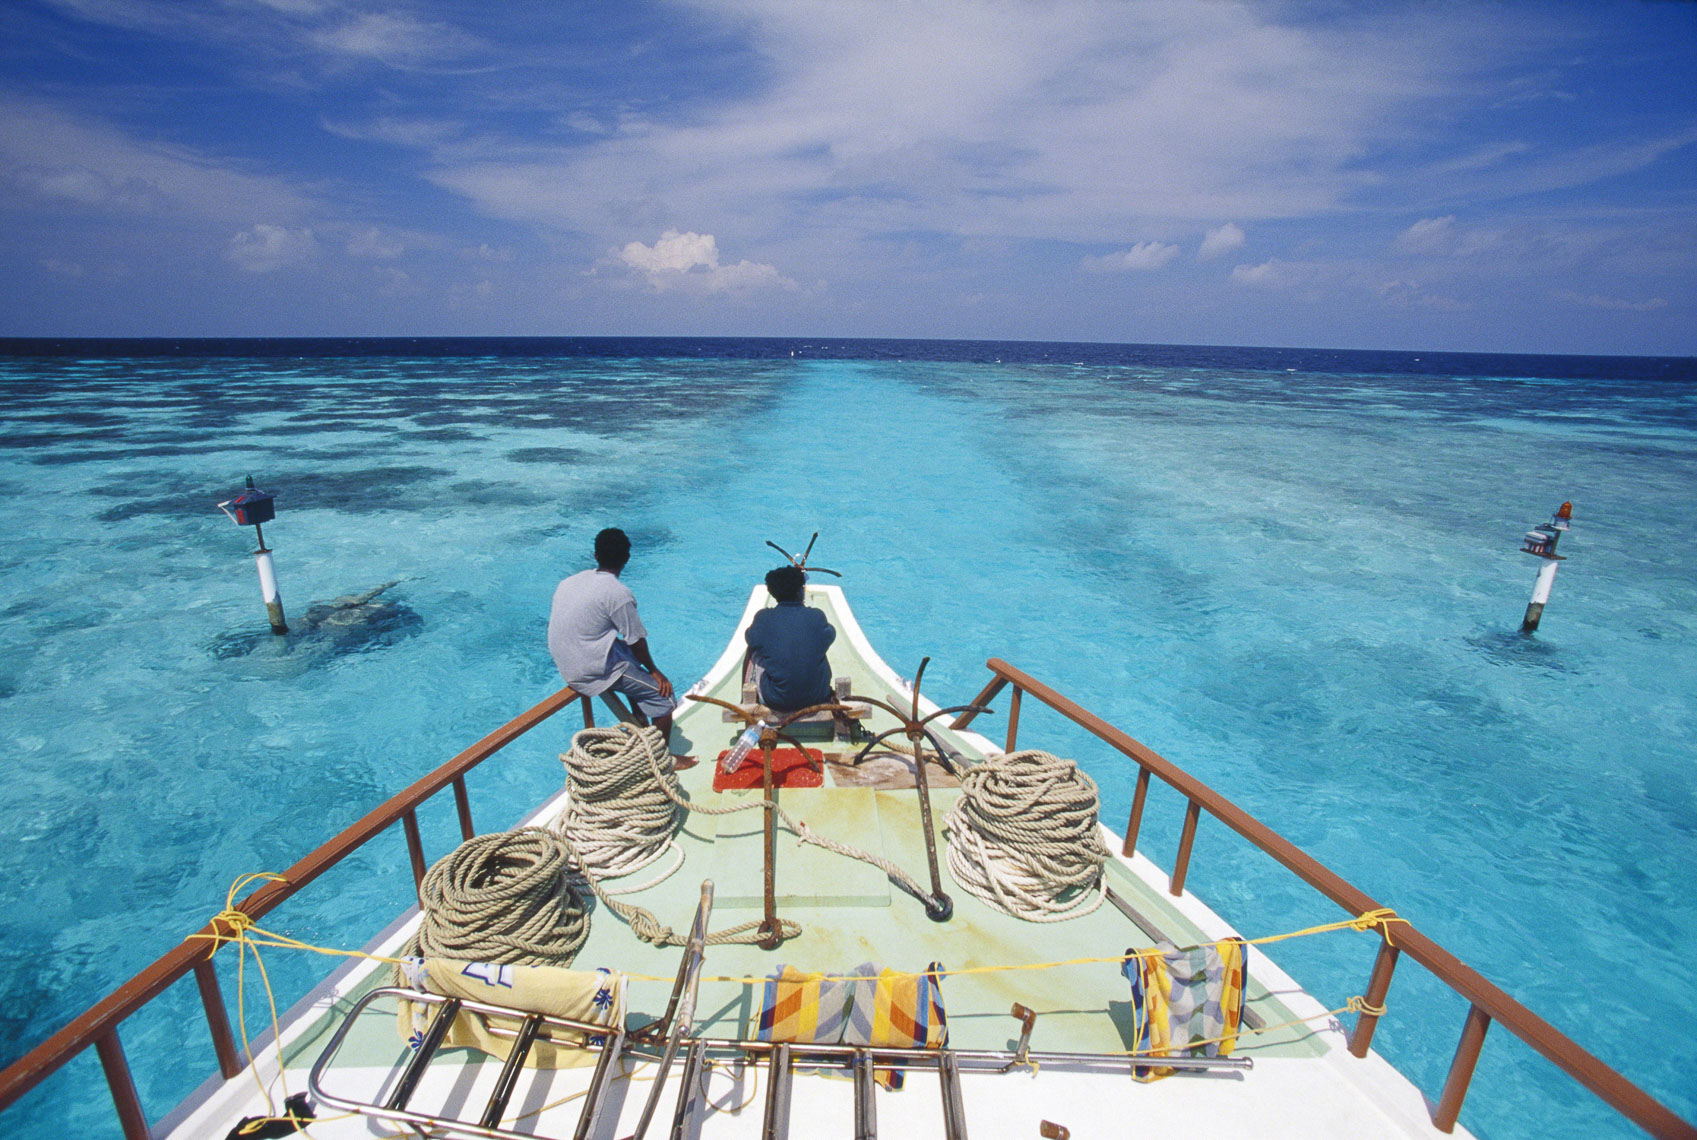 Maldivian Dhoni cuts through the narrow channel of the inter reef, Maldives